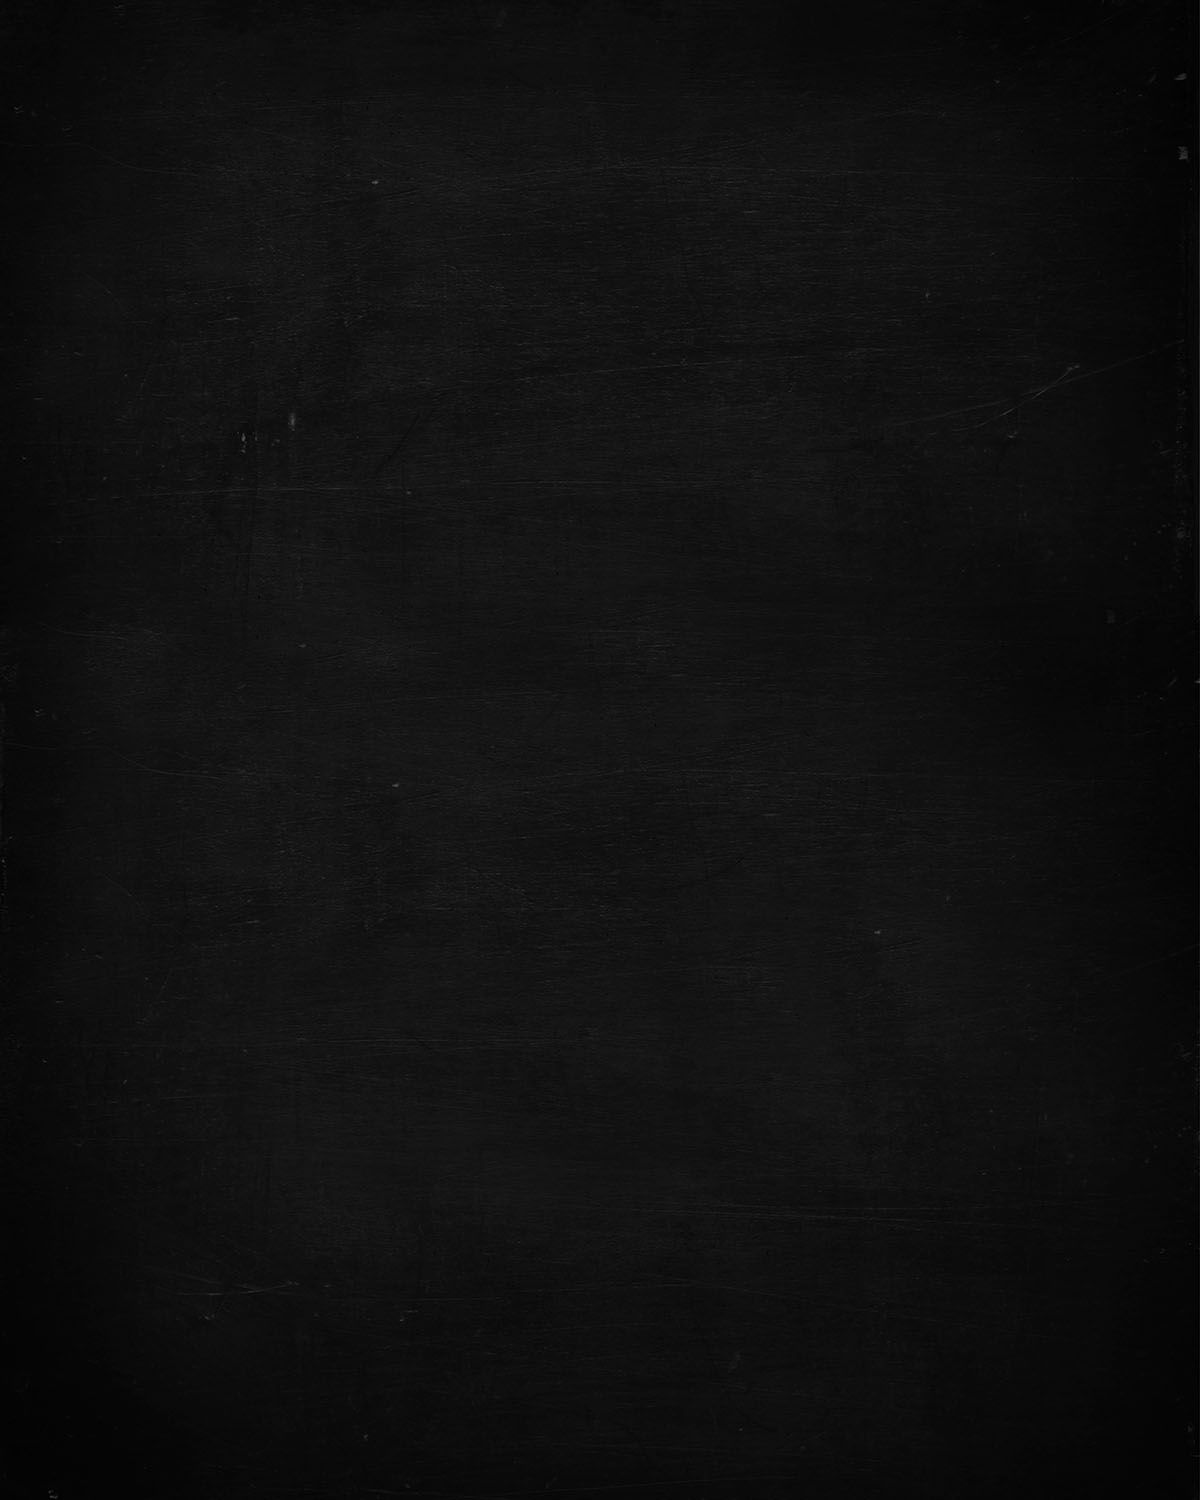 Freebie 16x20 300dpi Chalkboard Background For Your High Res Signs